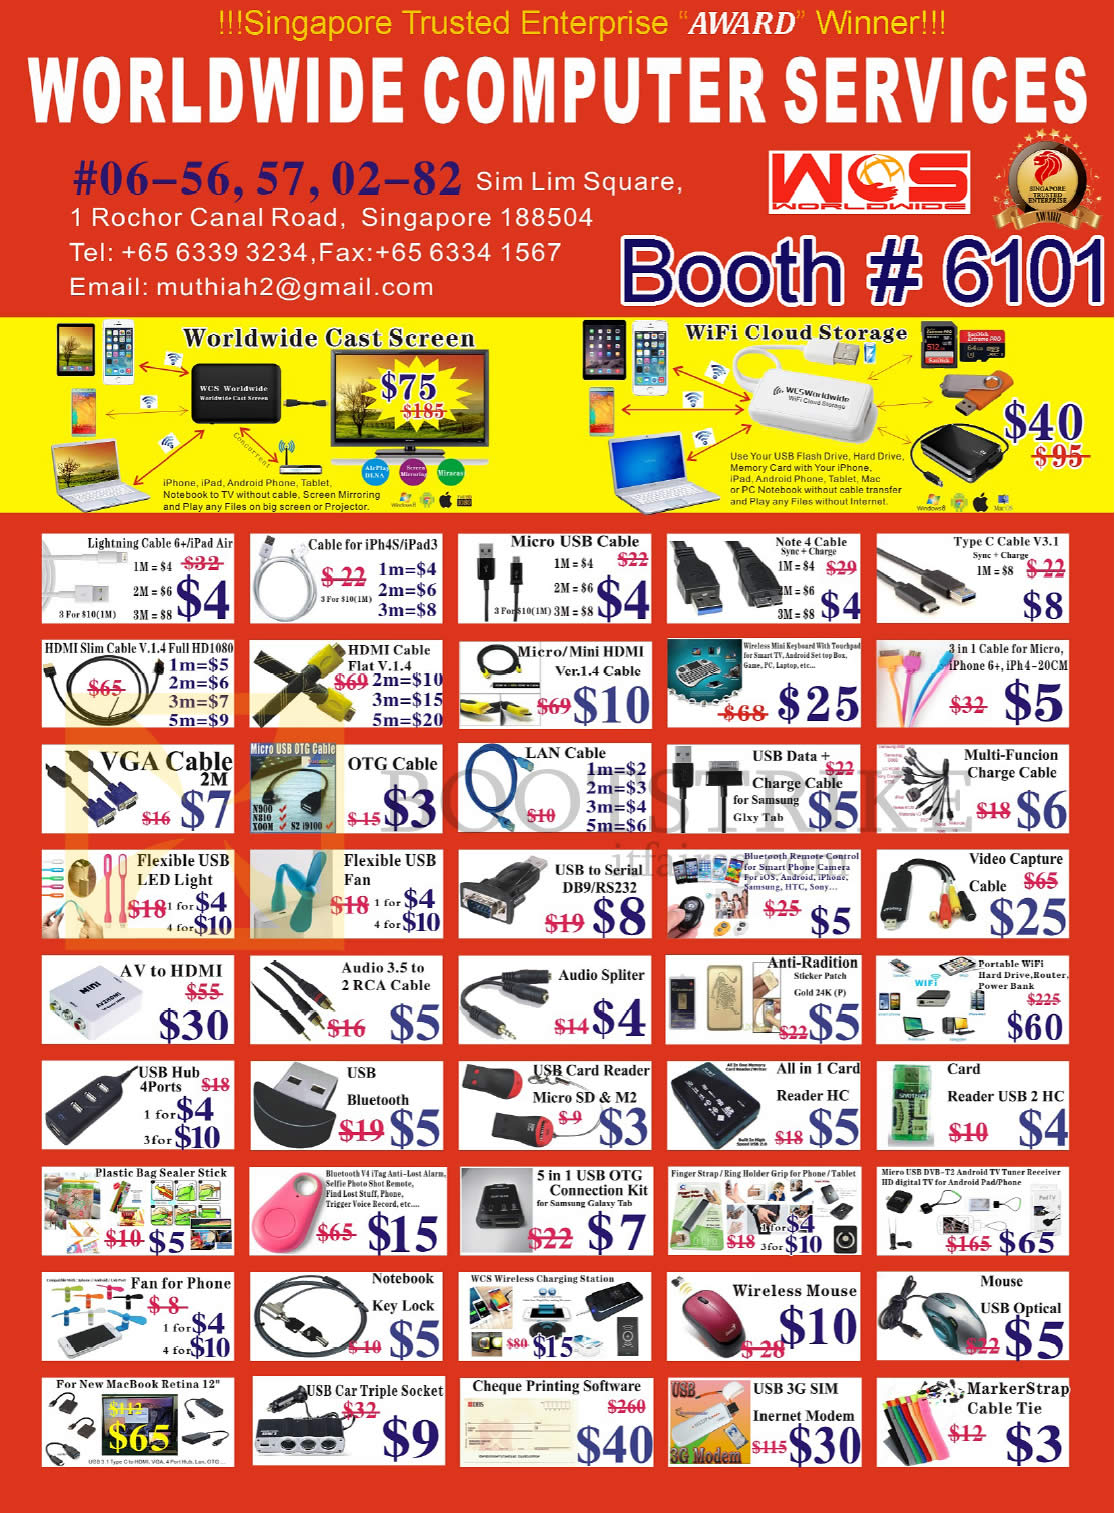 COMEX 2016 price list image brochure of Worldwide Computer Accessories Cables, VGA, OTG Cable, USB Bluetooth, Audio Splitter, Card Reader, Notebook Key Lock, Cheque Print Software